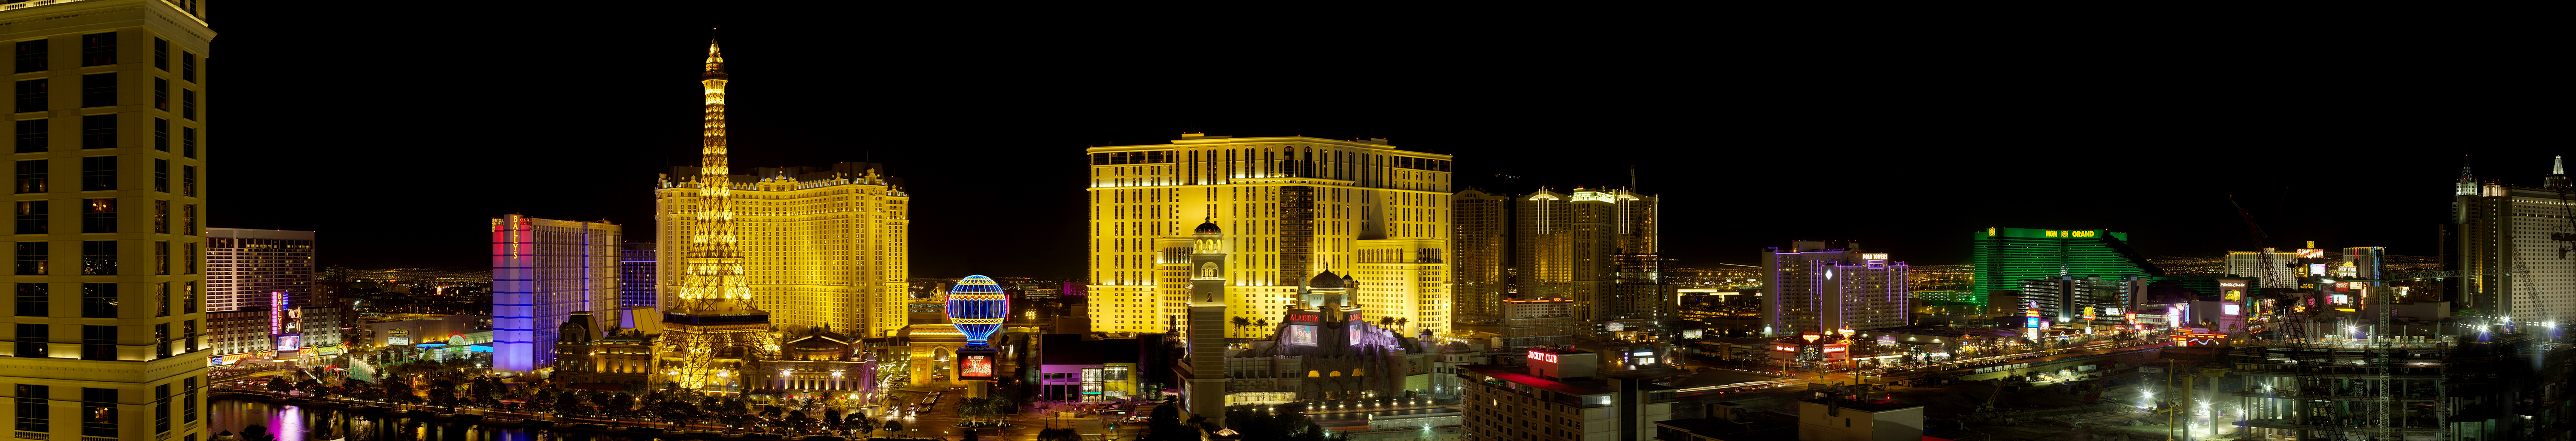 Las Vegas Strip Wikipedia - 10 coolest casinos world 2